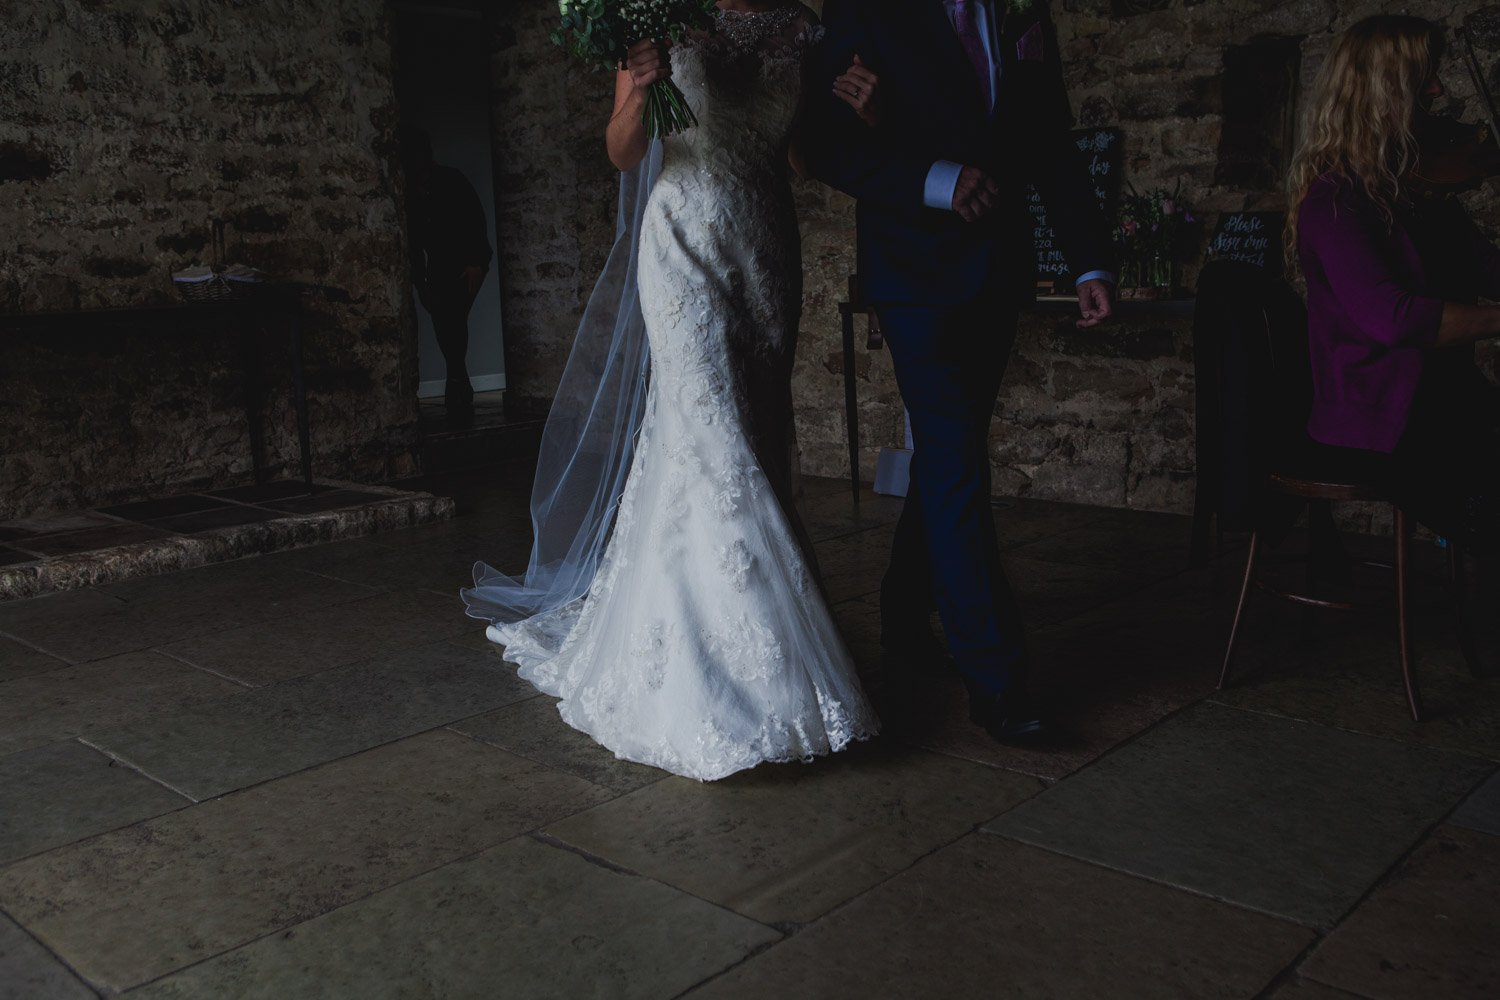 Healey Barn Wedding - Bride entrance